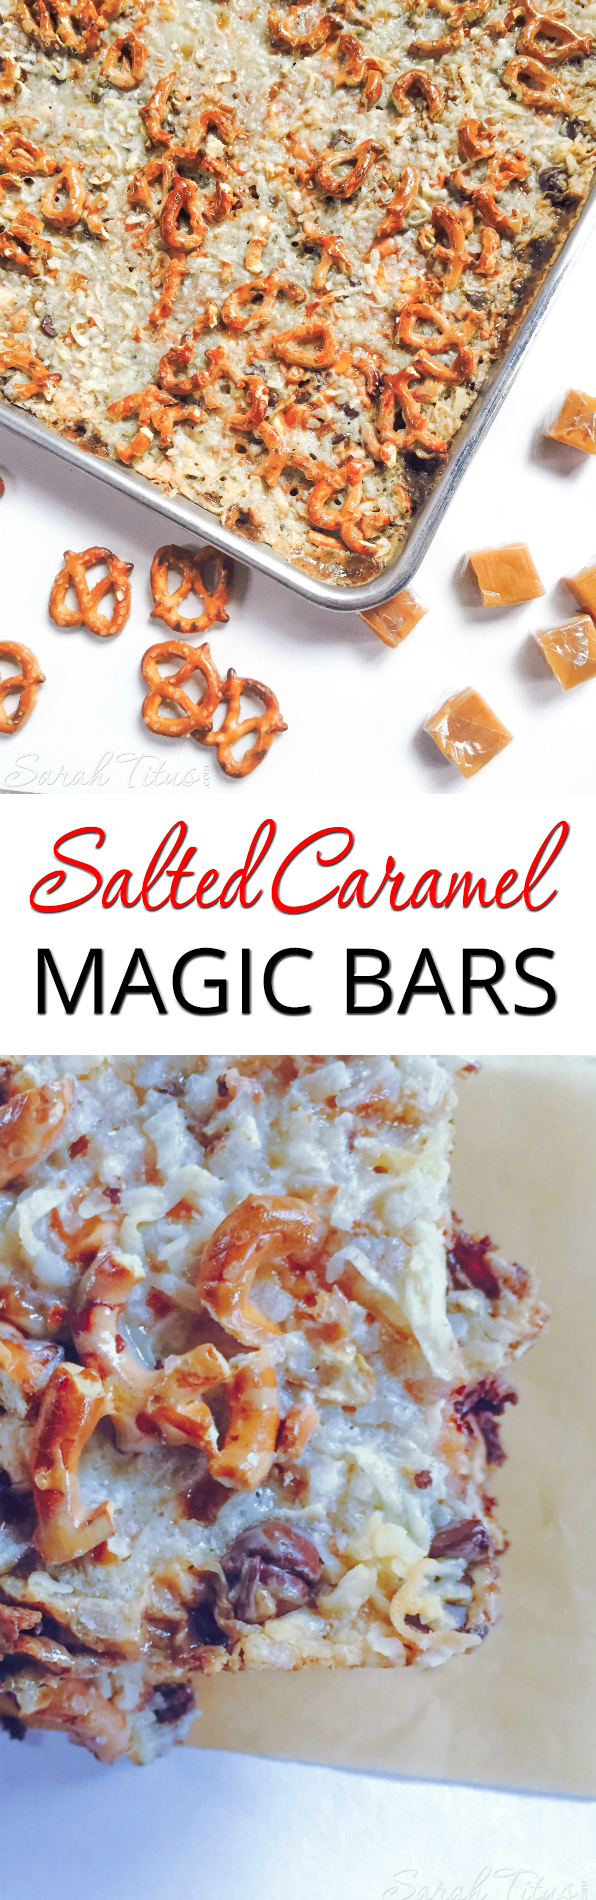 These Salted Caramel Magic Bars taste like you've spent much more time preparing them than you actually do. Sure to impress your guests this holiday season!